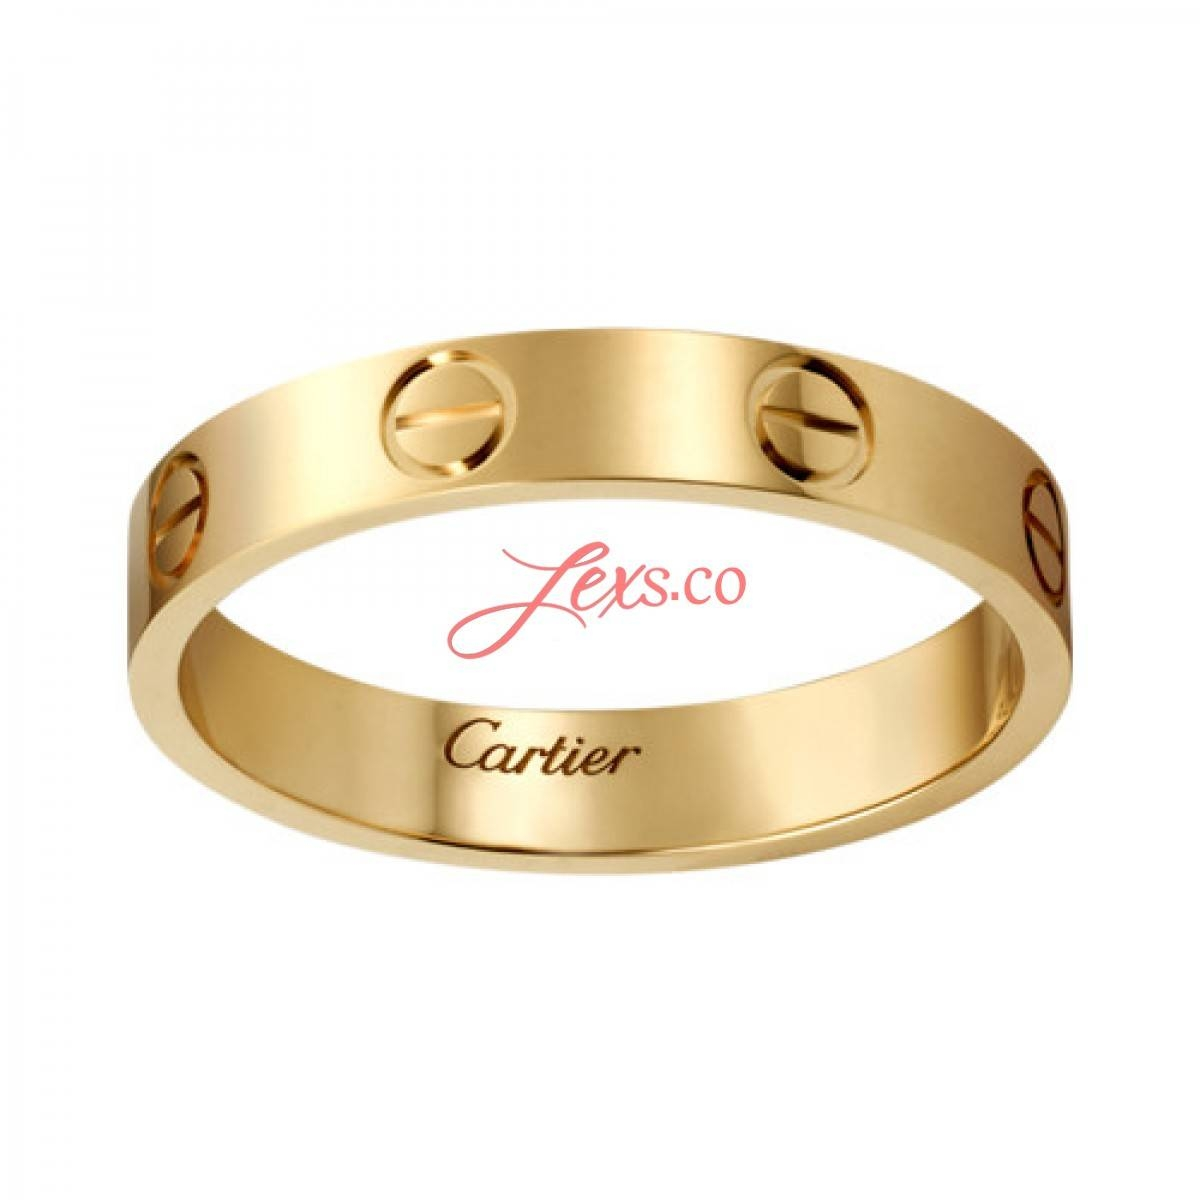 Love Wedding Band Replica 18K Yellow Gold Love Ring Copy B4085000 Throughout Cartier Men Wedding Bands (View 13 of 15)